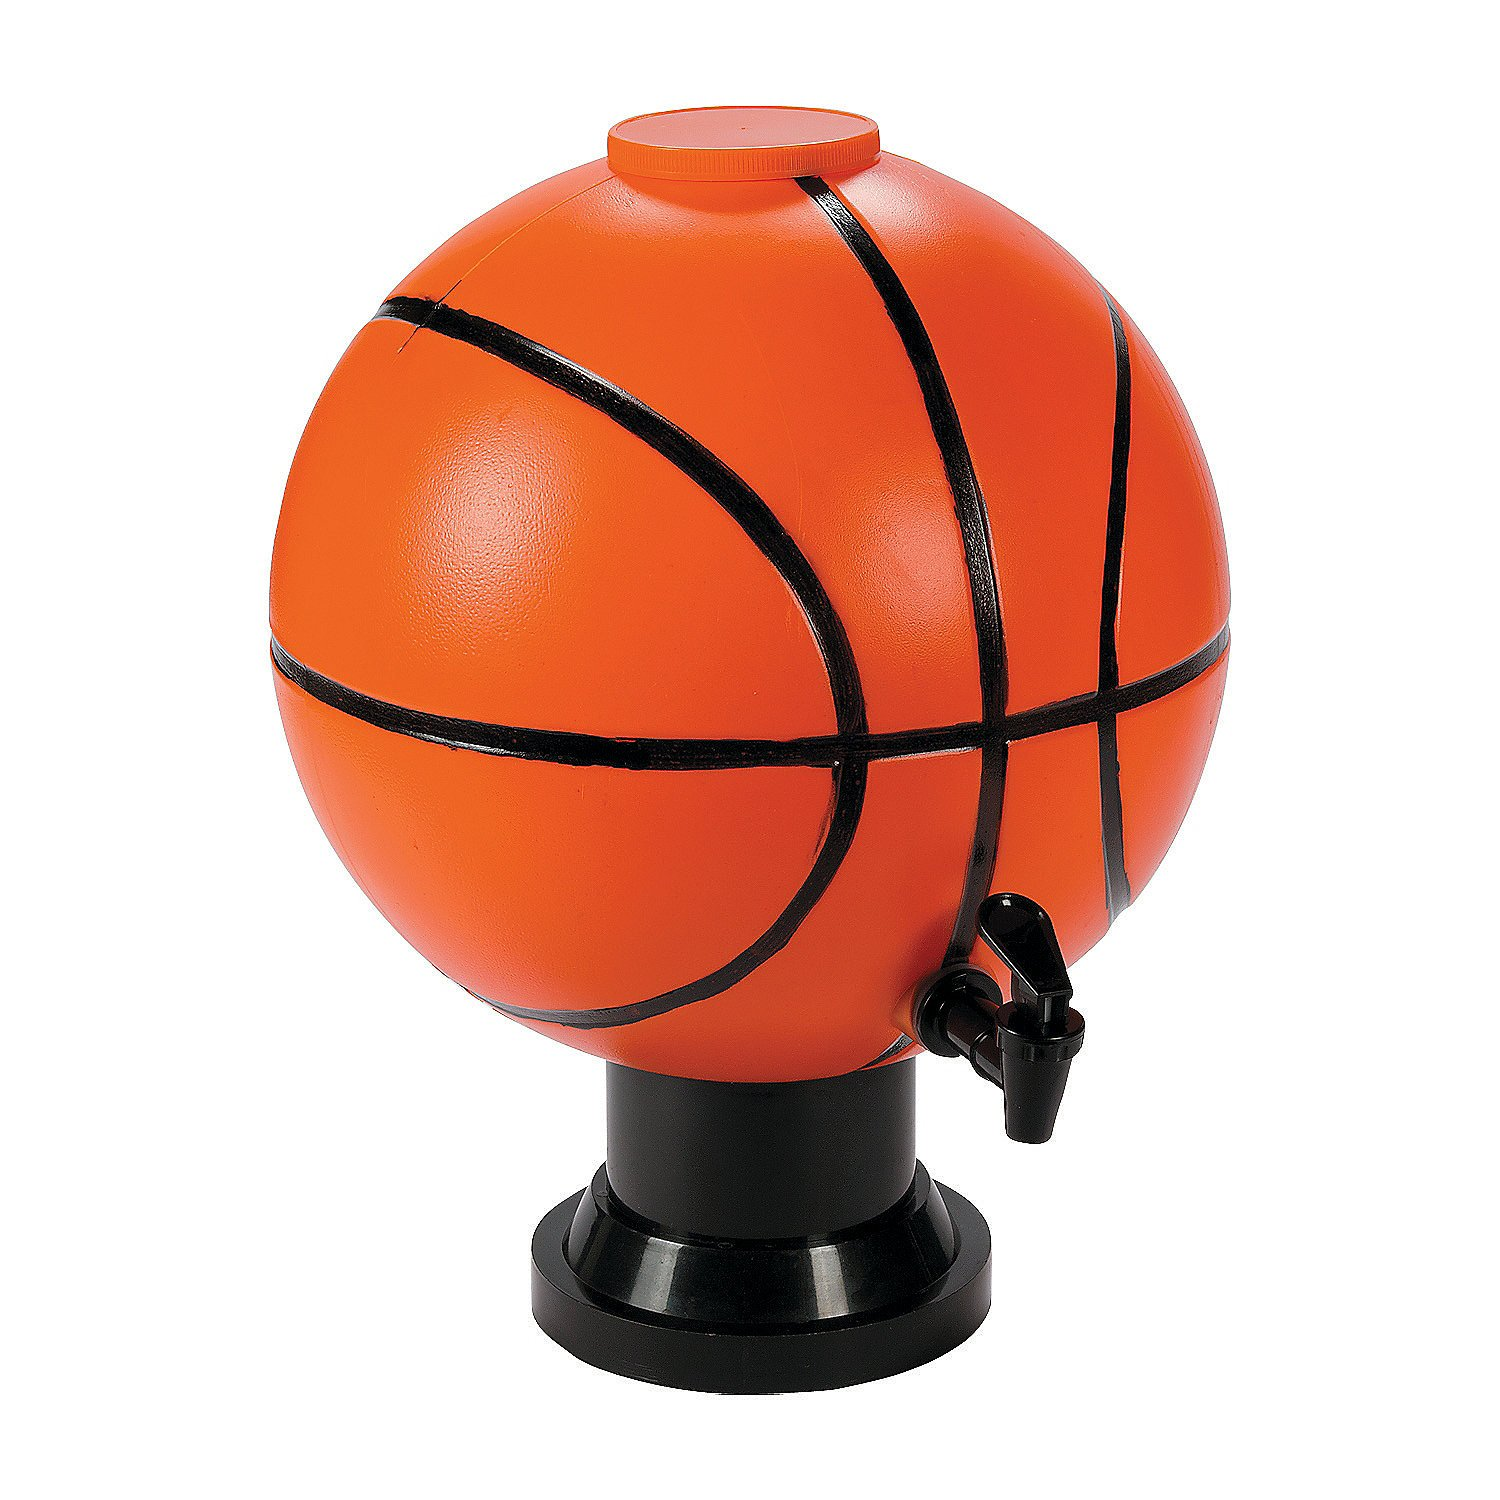 Basketball Drink Dispenser (holds 3 gallons) Sports Party Supplies by Fun Express